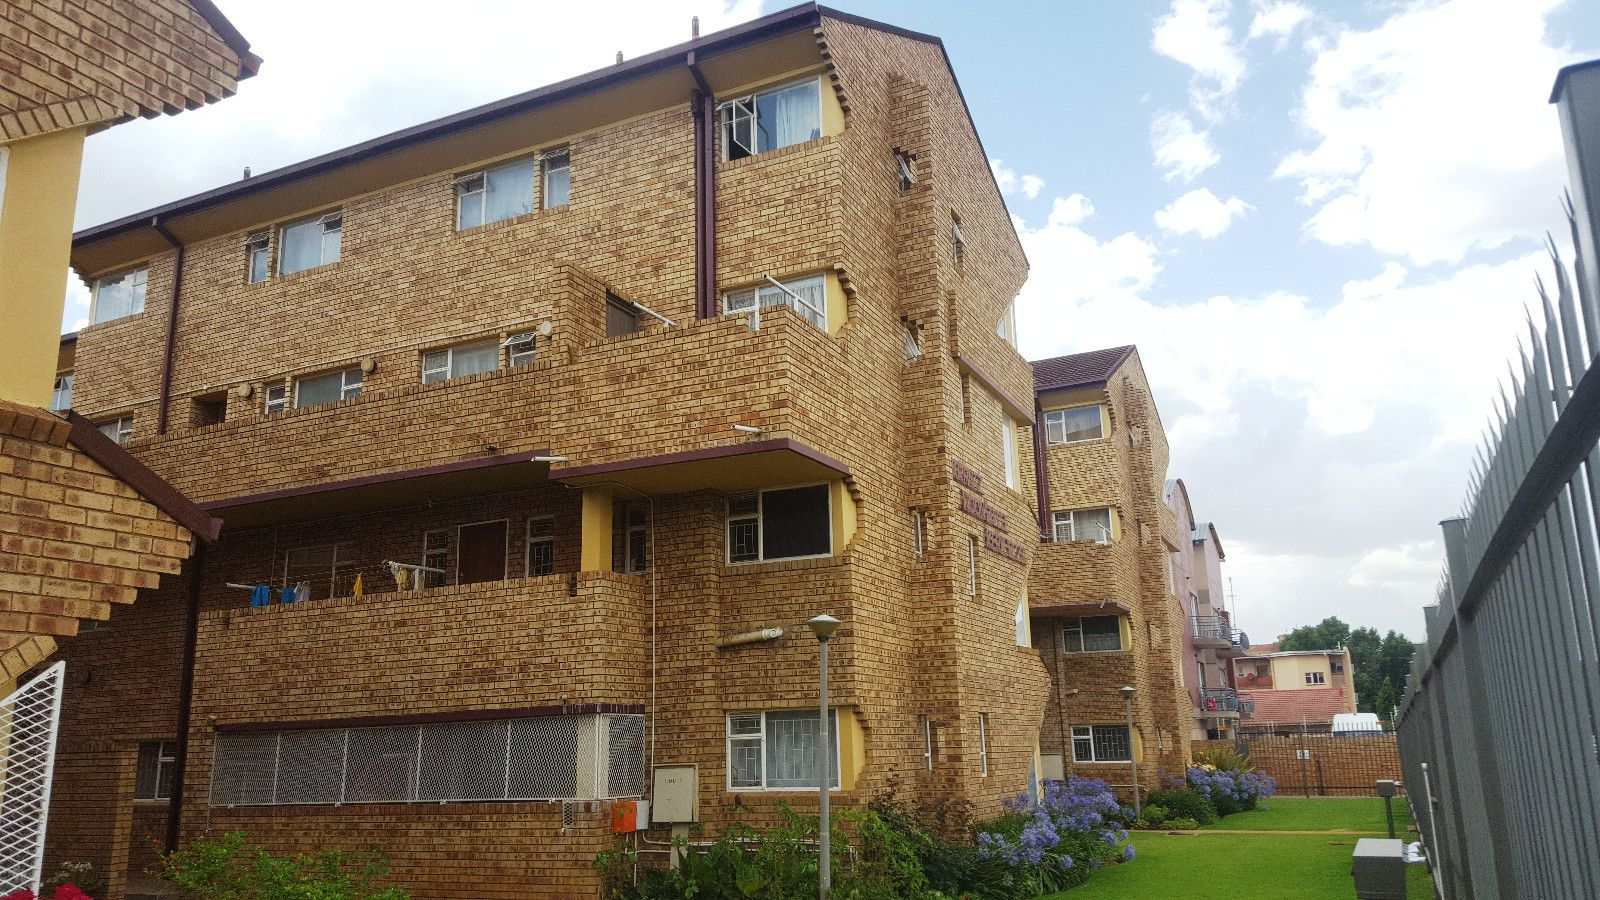 Potchefstroom Central property for sale. Ref No: 13449643. Picture no 1